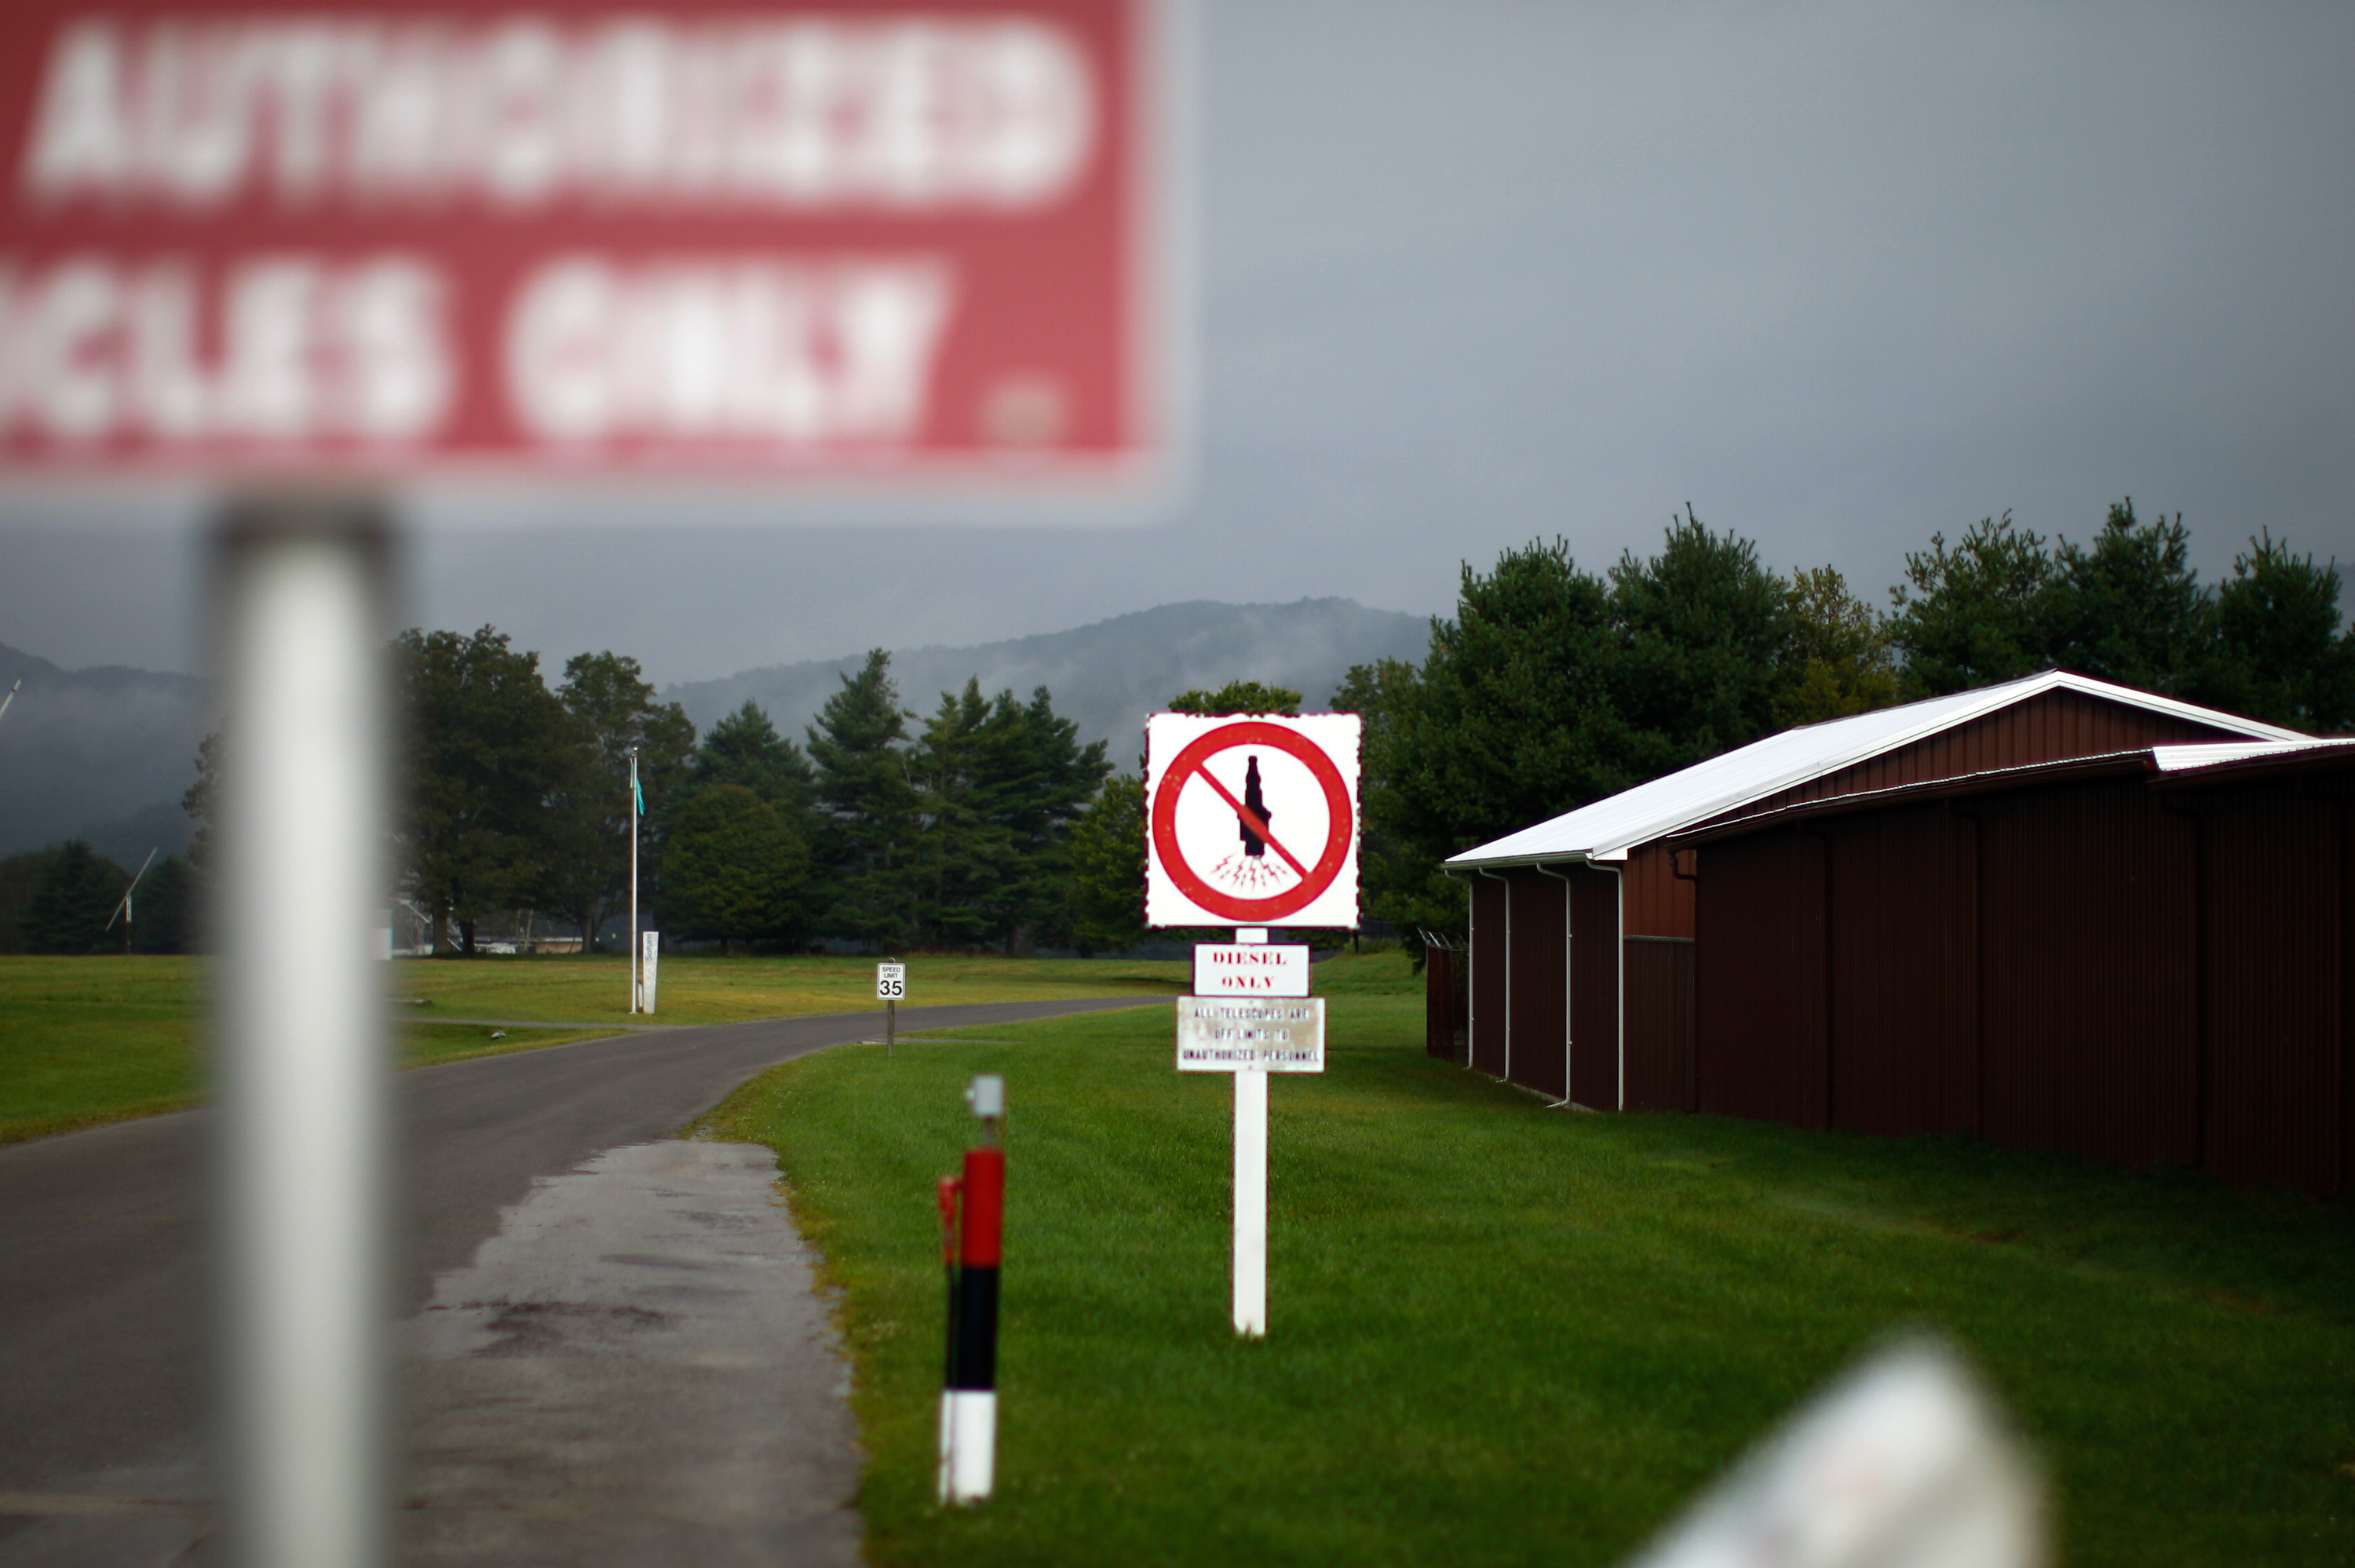 A series of signs and roadblocks mark the farthest point visitors can move toward the NRAO. Even spark plugs can disrupt the telescopes after this point, so old diesel trucks without plugs are used to drive in the zone.